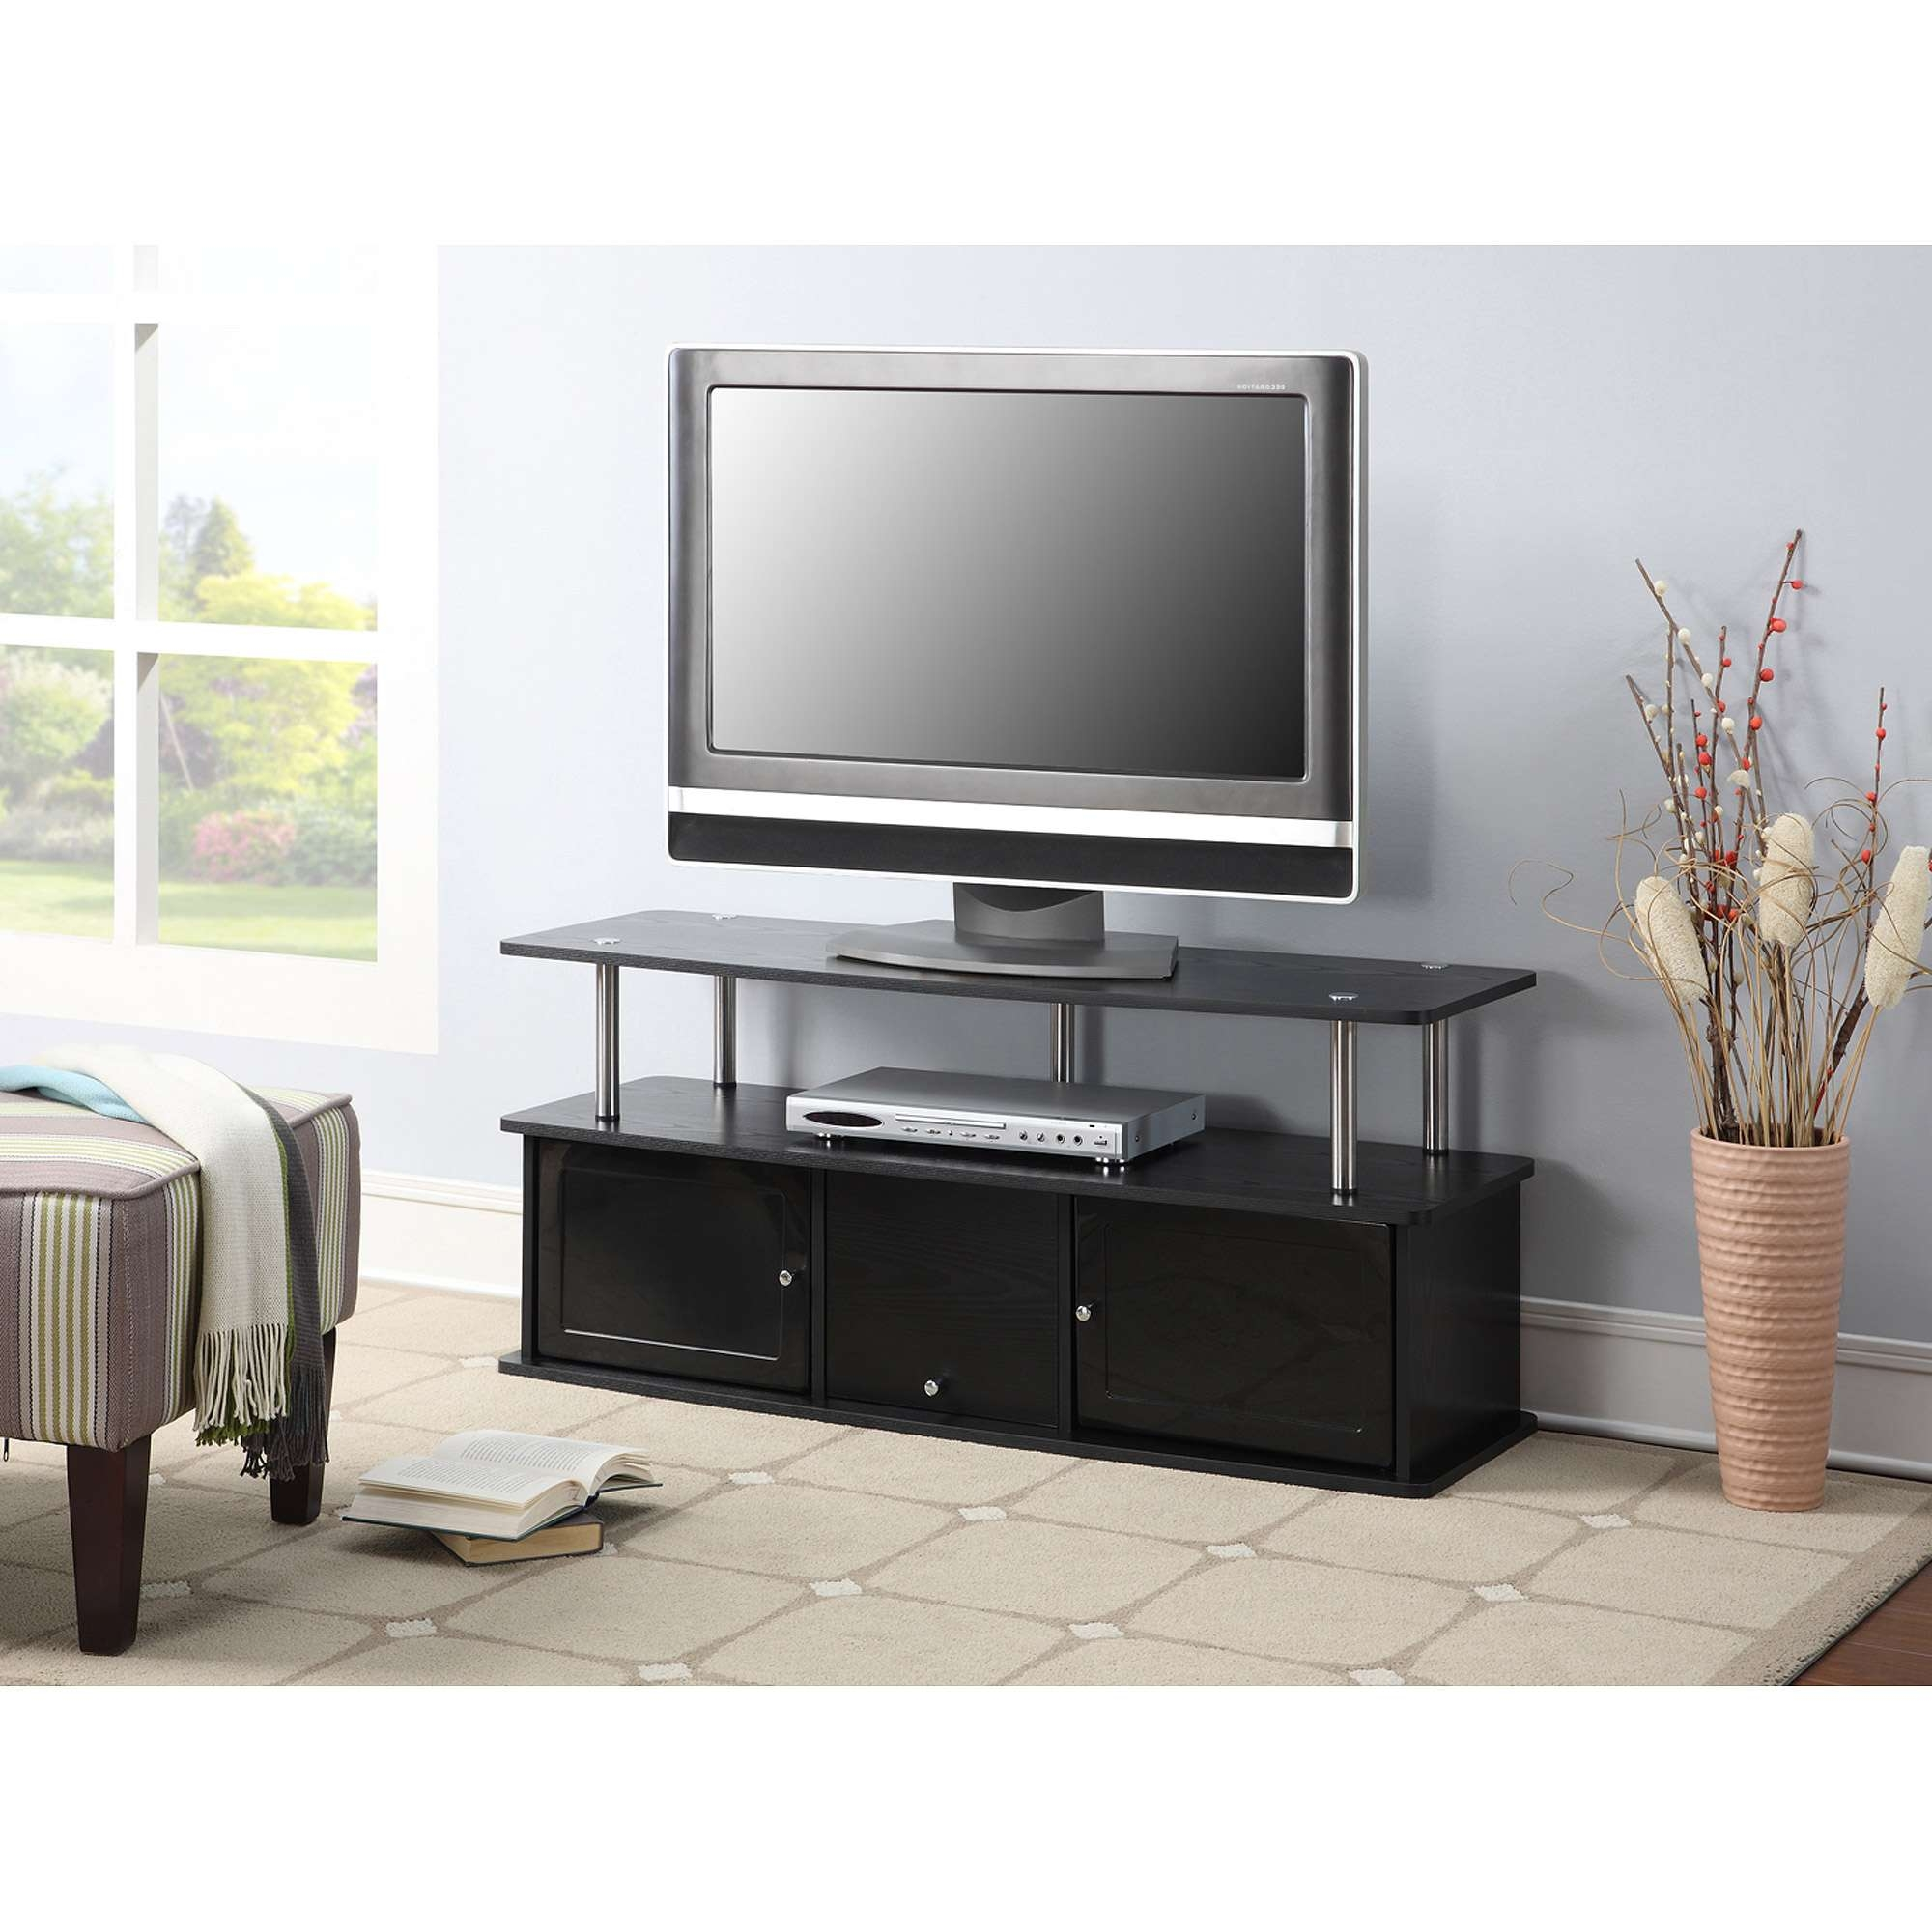 Coffee Table : Wonderful Tv Stand And Coffee Table Set Cheap End Inside Tv Stands For Small Spaces (View 4 of 15)